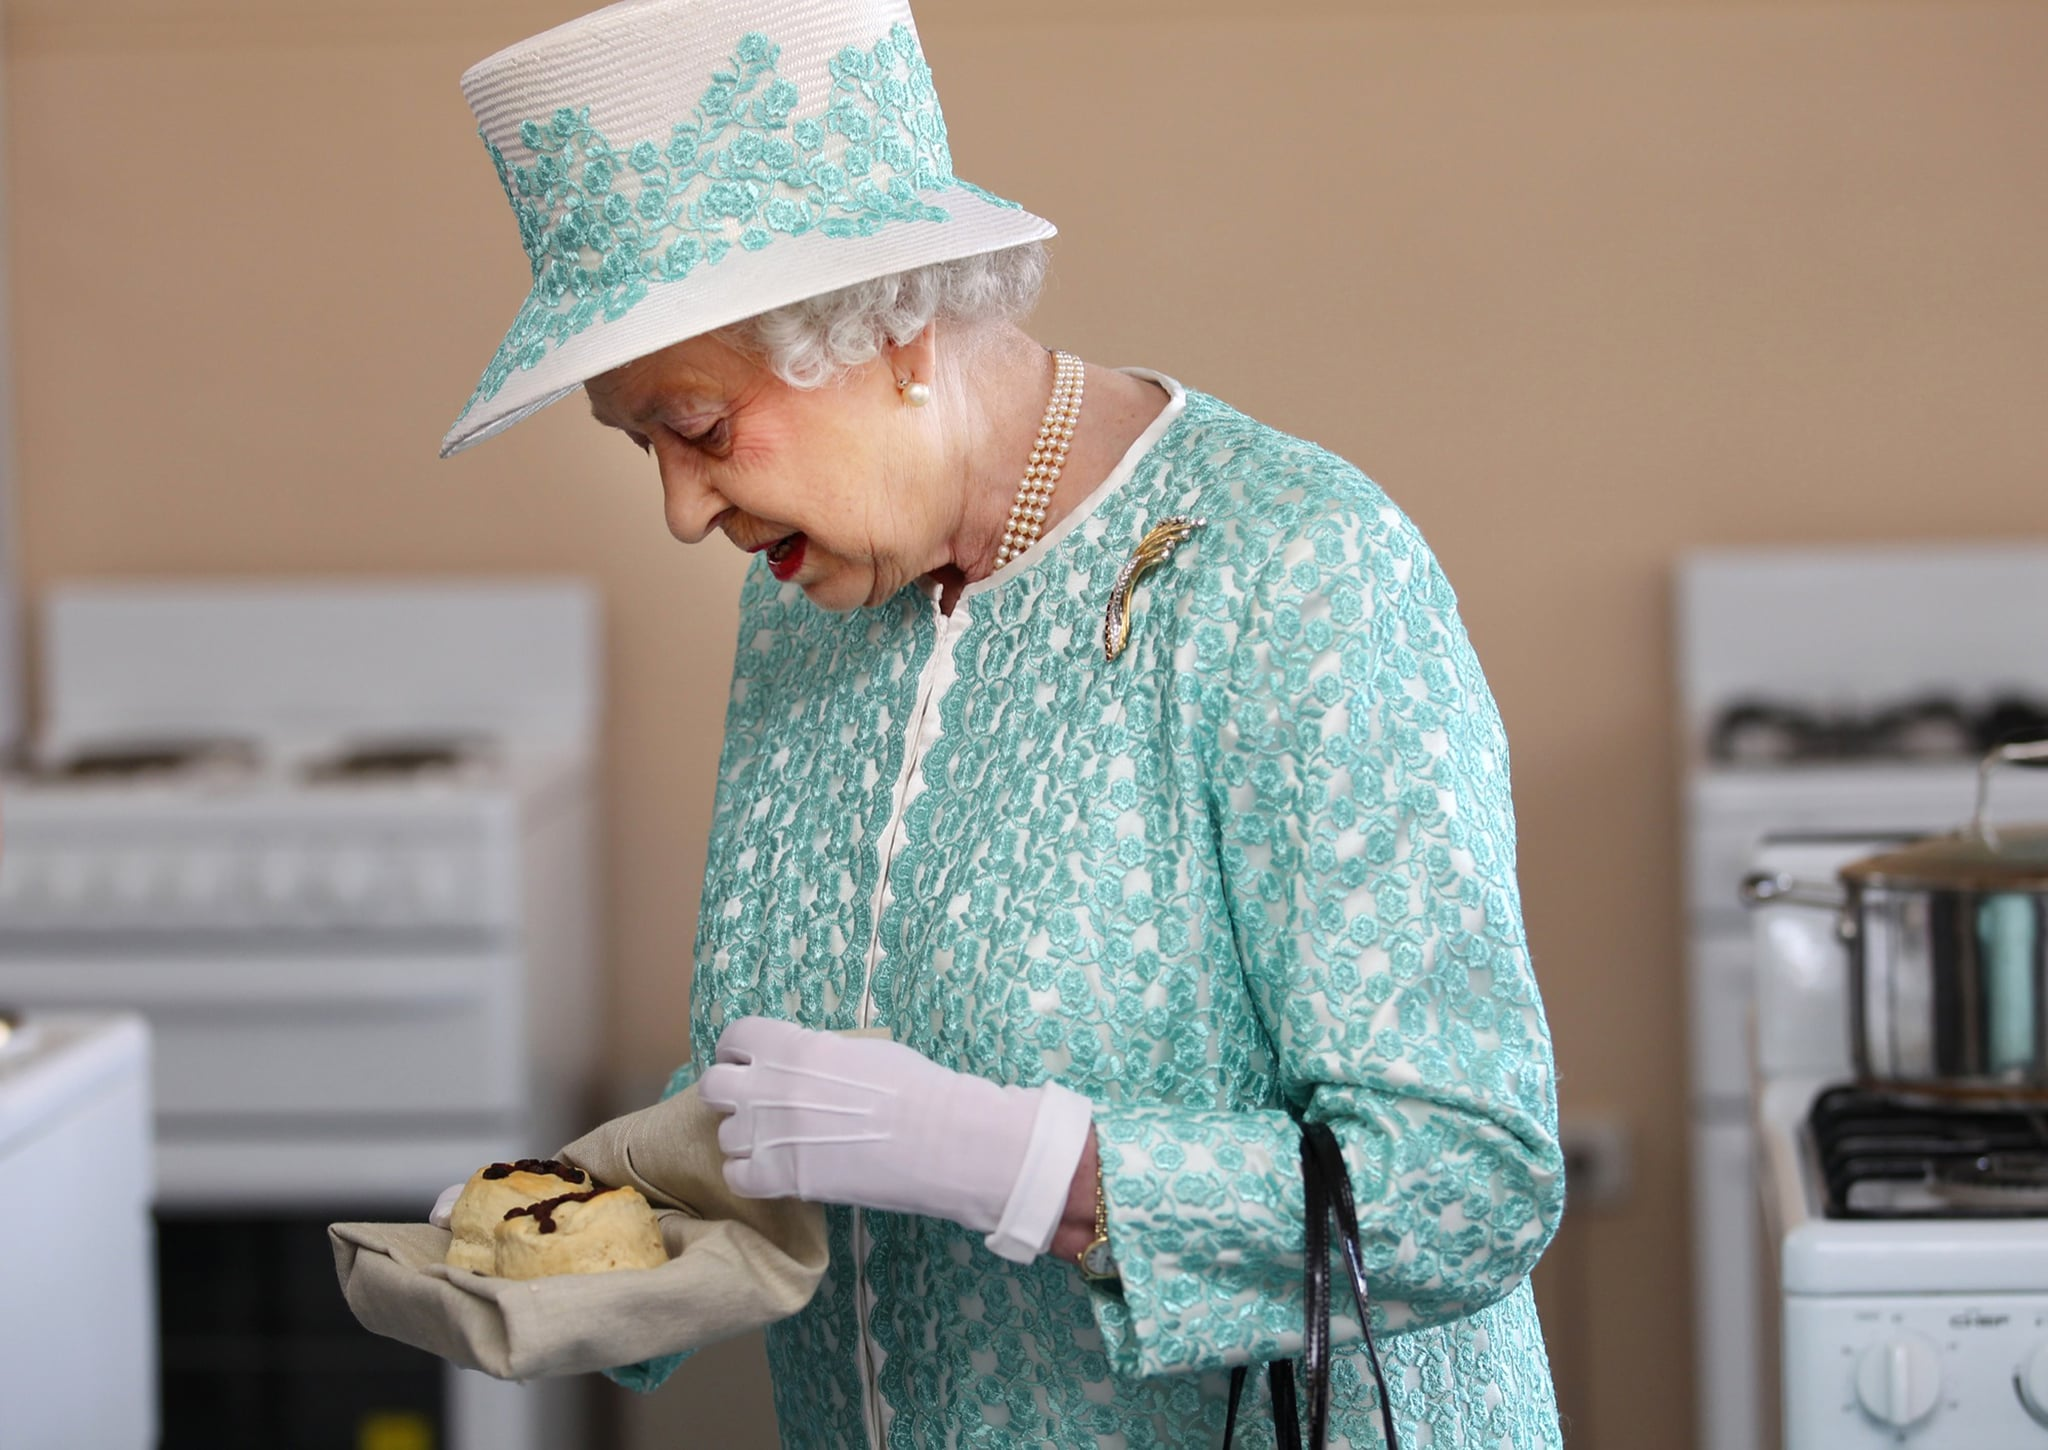 Britain's Queen Elizabeth II looks at homemade scones as she visits the kitchen at Clontarf Aboriginal College in Perth on October 27, 2011. The queen, who arrived in Perth on October 26, will officially open the 54-nation Commonwealth Heads of Government Meeting (CHOGM) on October 28 where revamping succession to the British throne will be discussed, concluding a 10-day tour of her antipodean realm.    AFP PHOTO / POOL / SHARON SMITH (Photo credit should read SHARON SMITH/AFP via Getty Images)